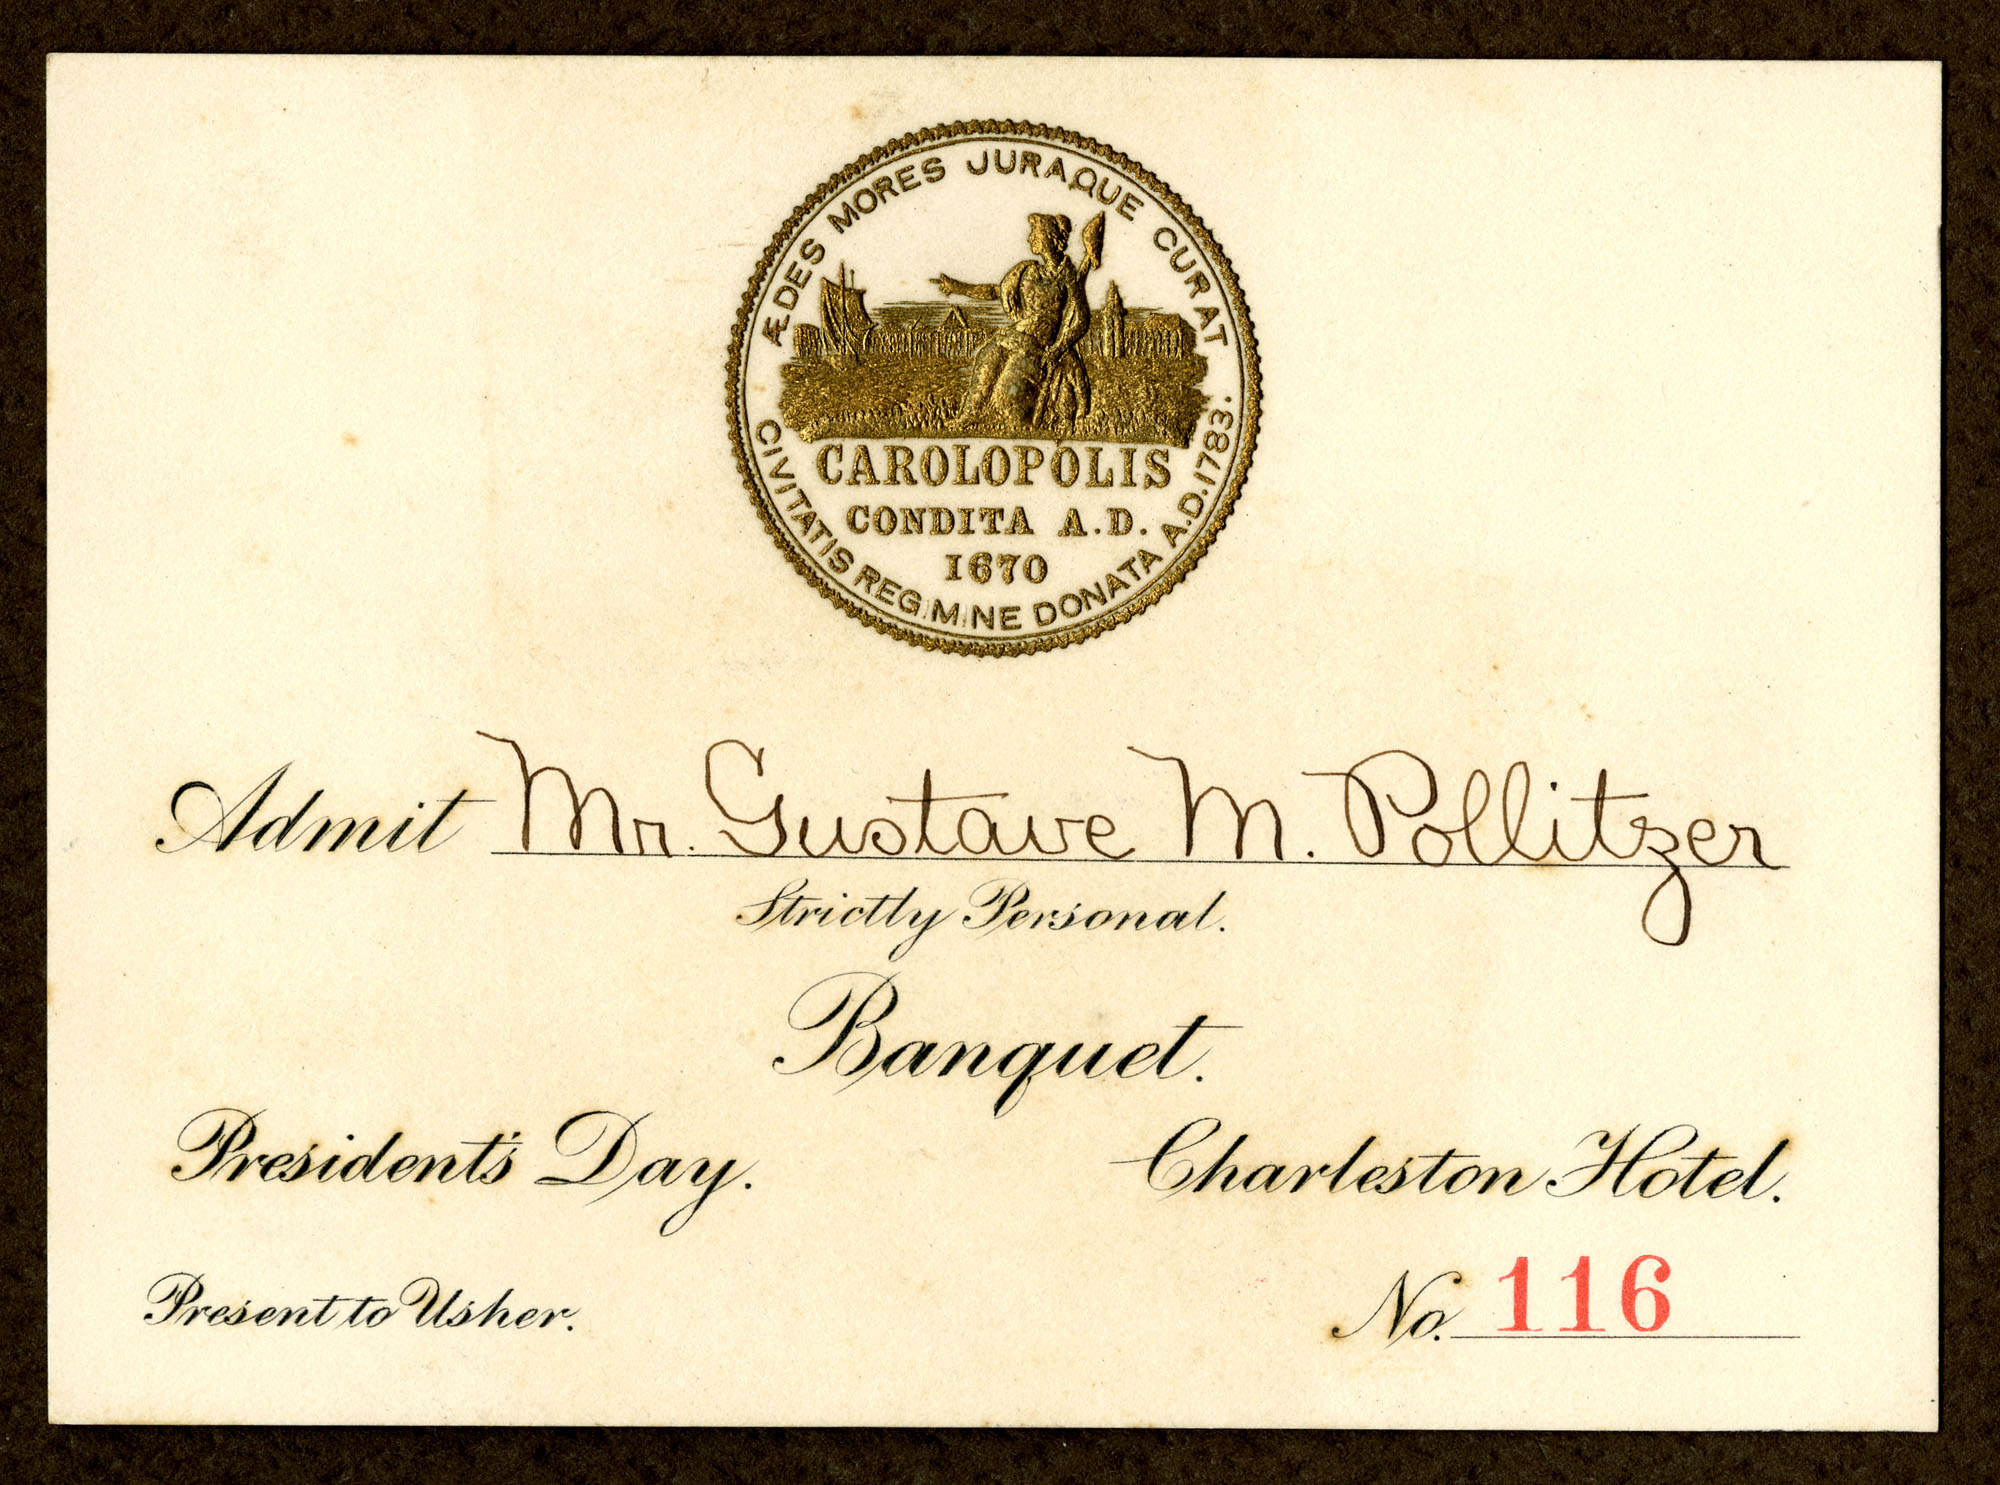 Gustave M. Pollitzer World's Fair banquet ticket for President's Day